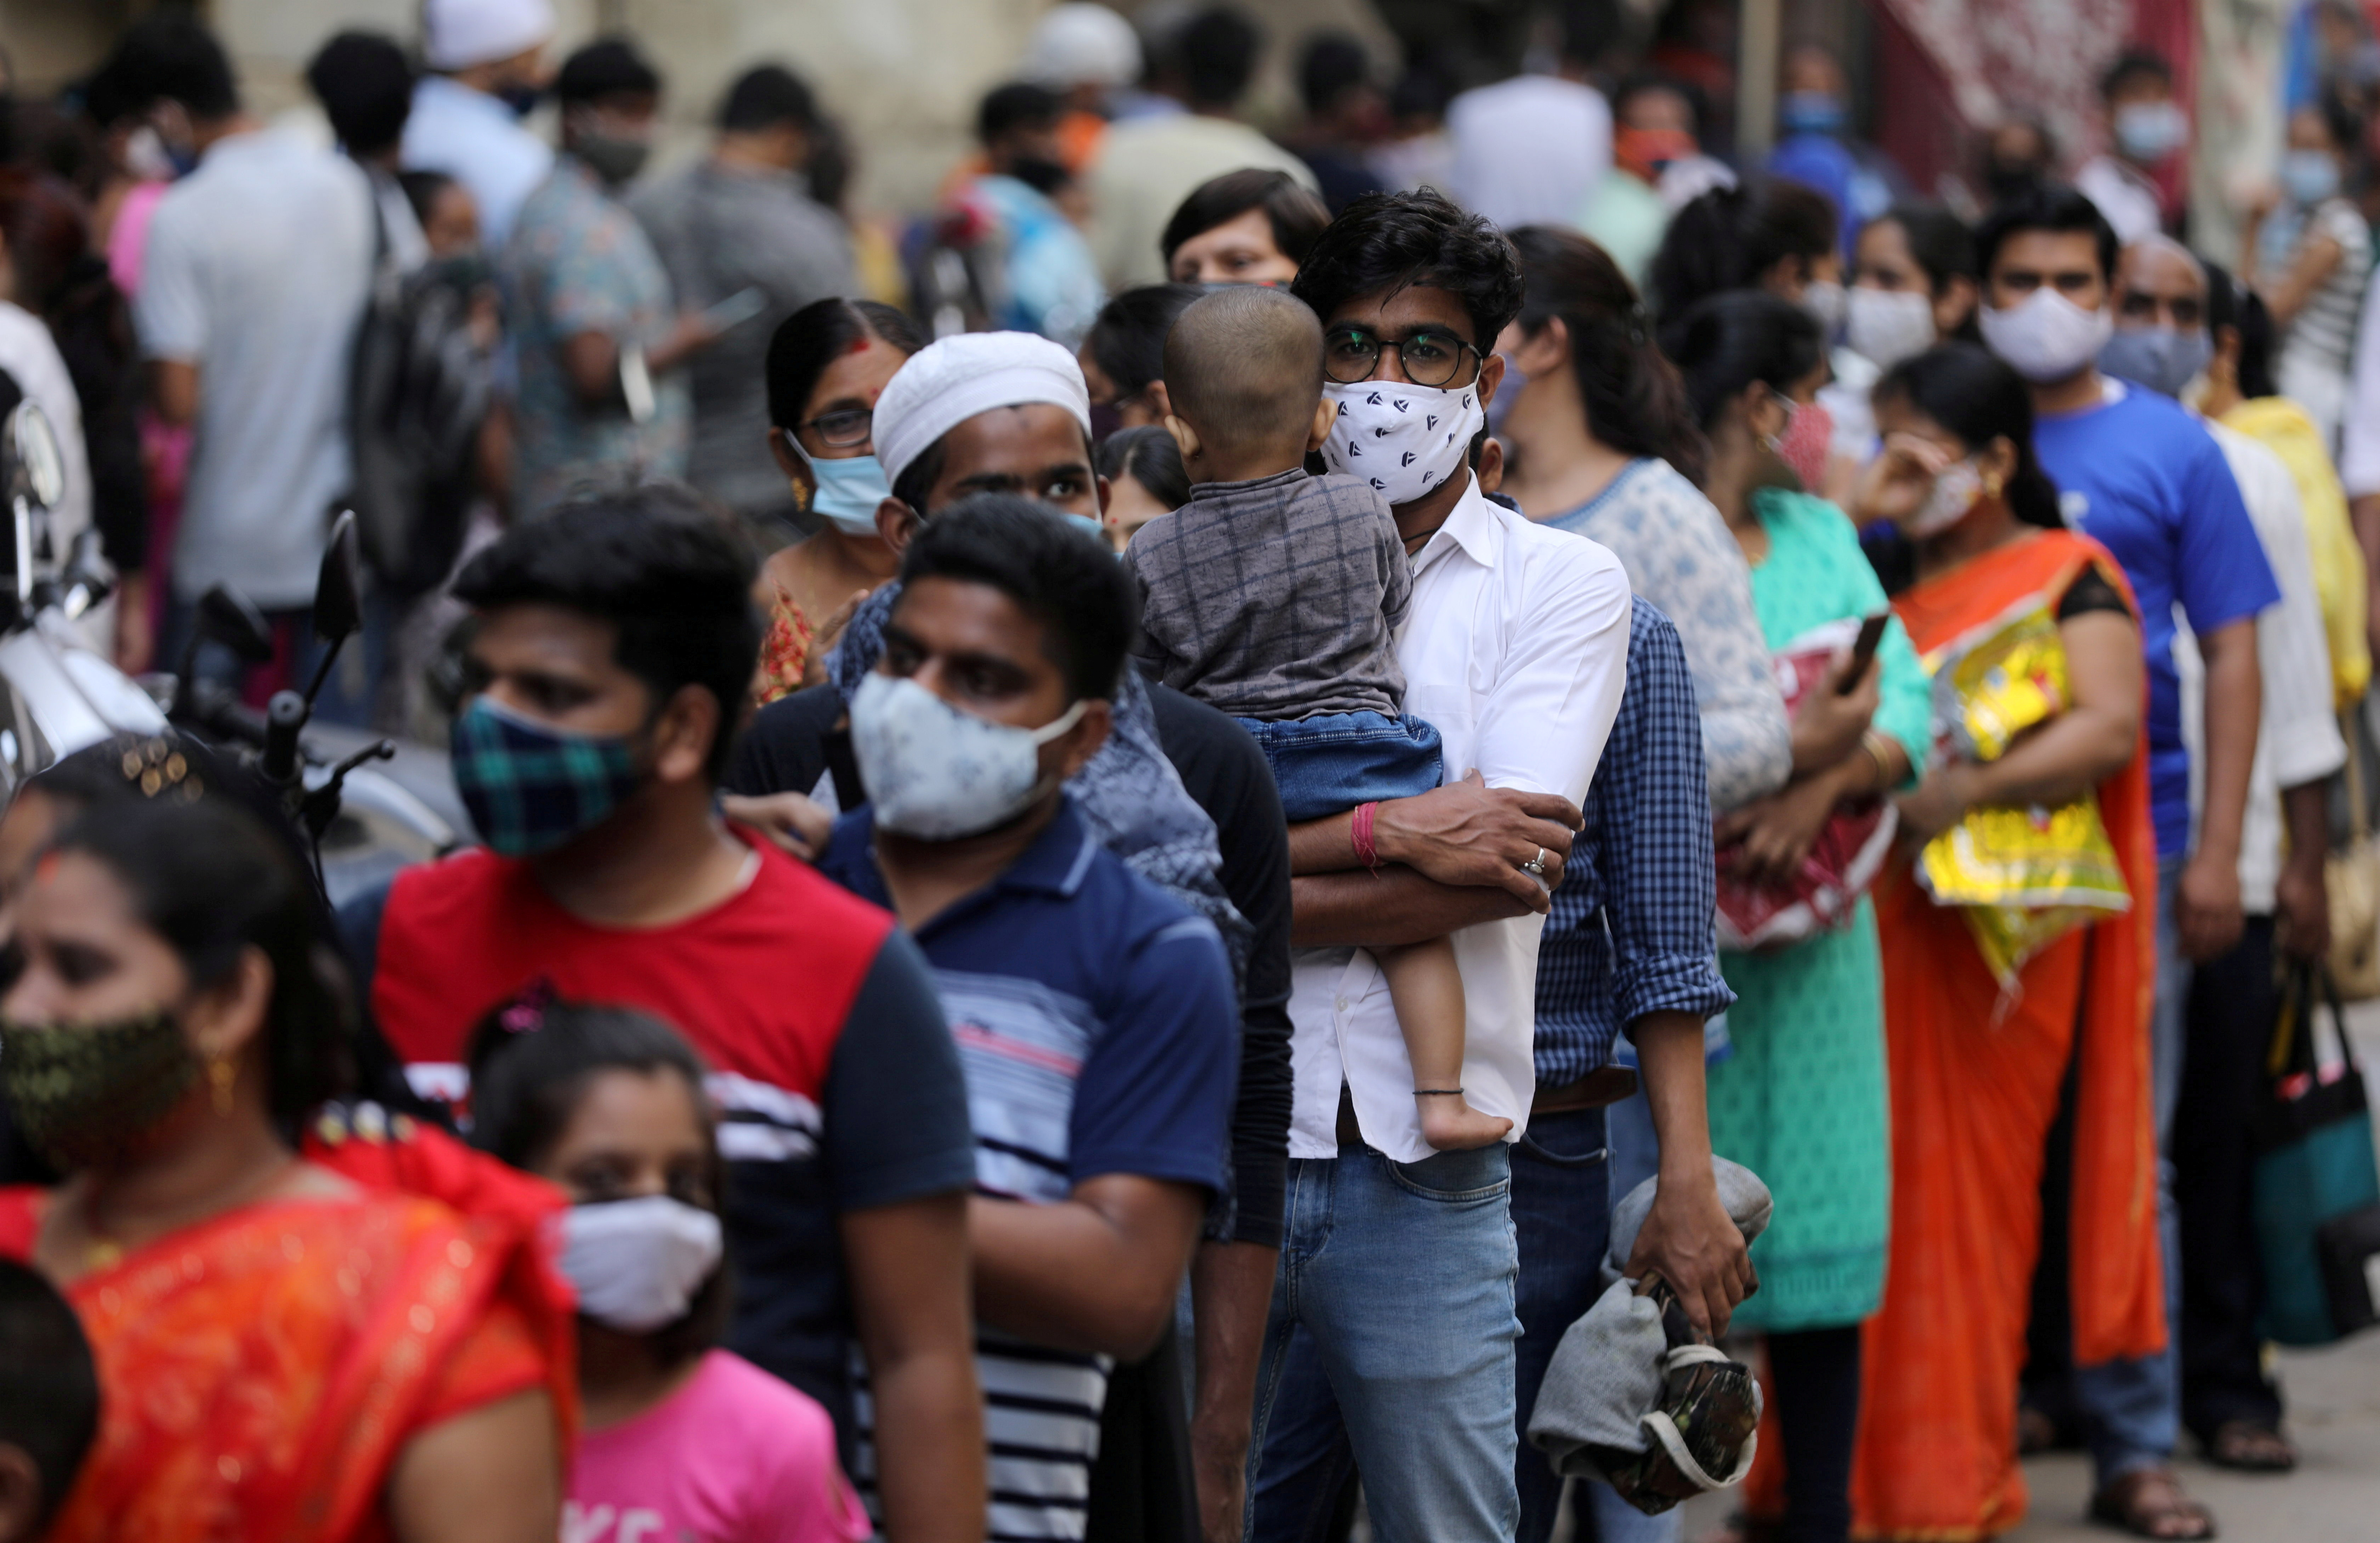 People wait in a line to enter a supermarket amidst the spread of the coronavirus disease (COVID-19) in Mumbai, India, April 4, 2021. REUTERS/Francis Mascarenhas/File Photo